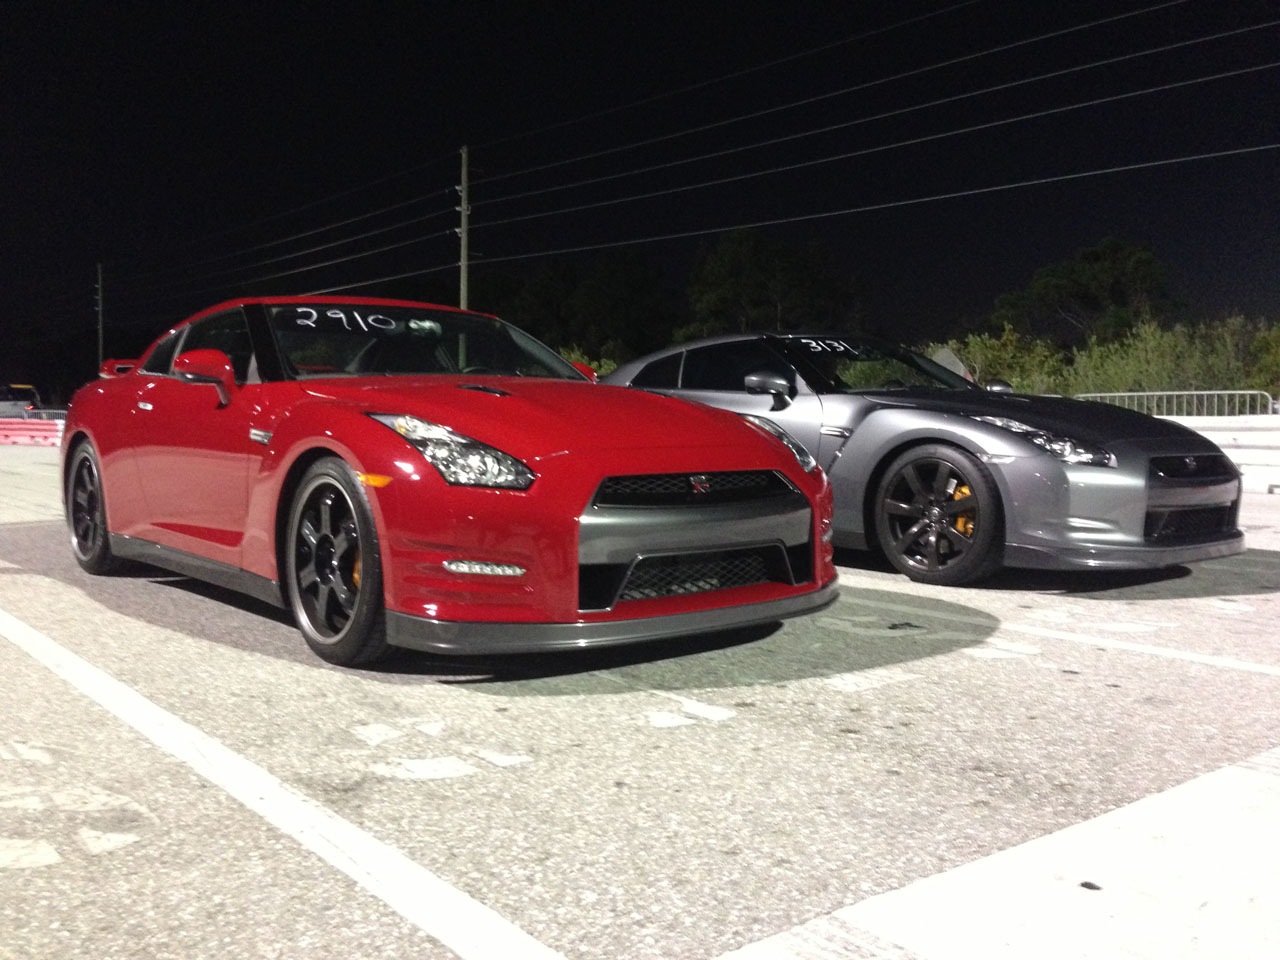 2013 Solid Red Nissan GT-R AAM Midpipe HPLogic Tune picture, mods, upgrades